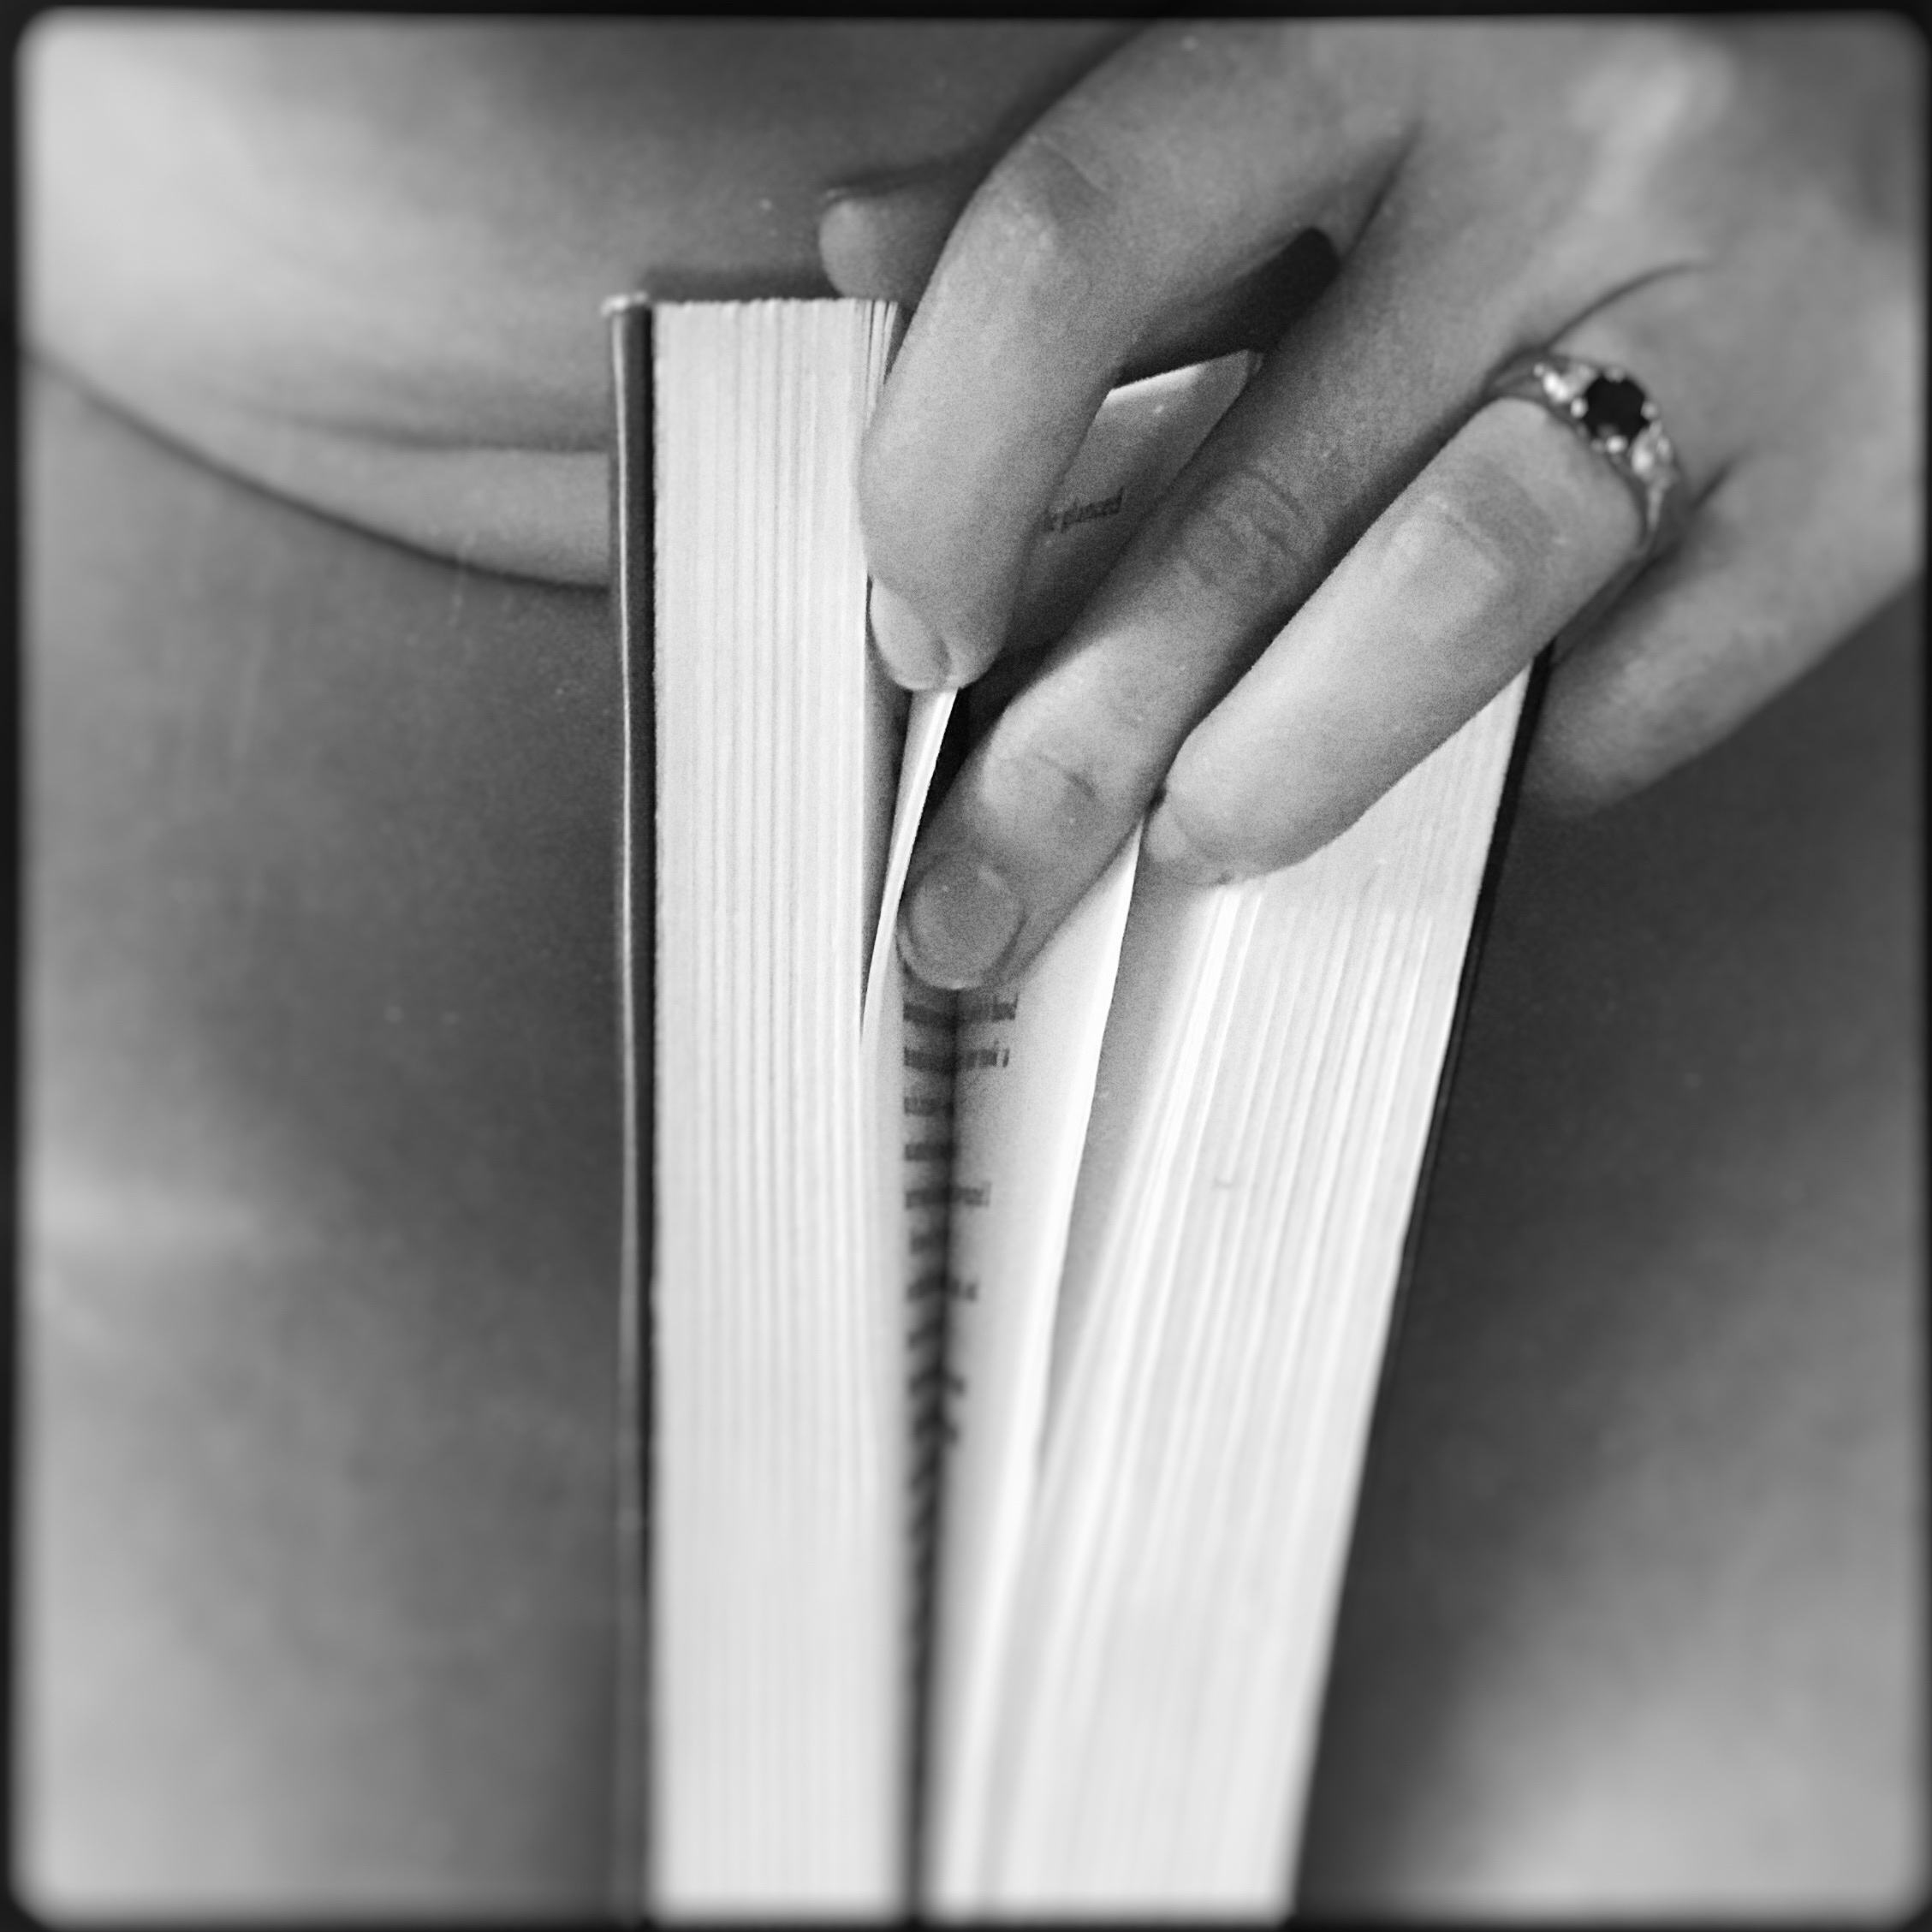 A black and white image of me, holding a book between my thighs and fingering the pages